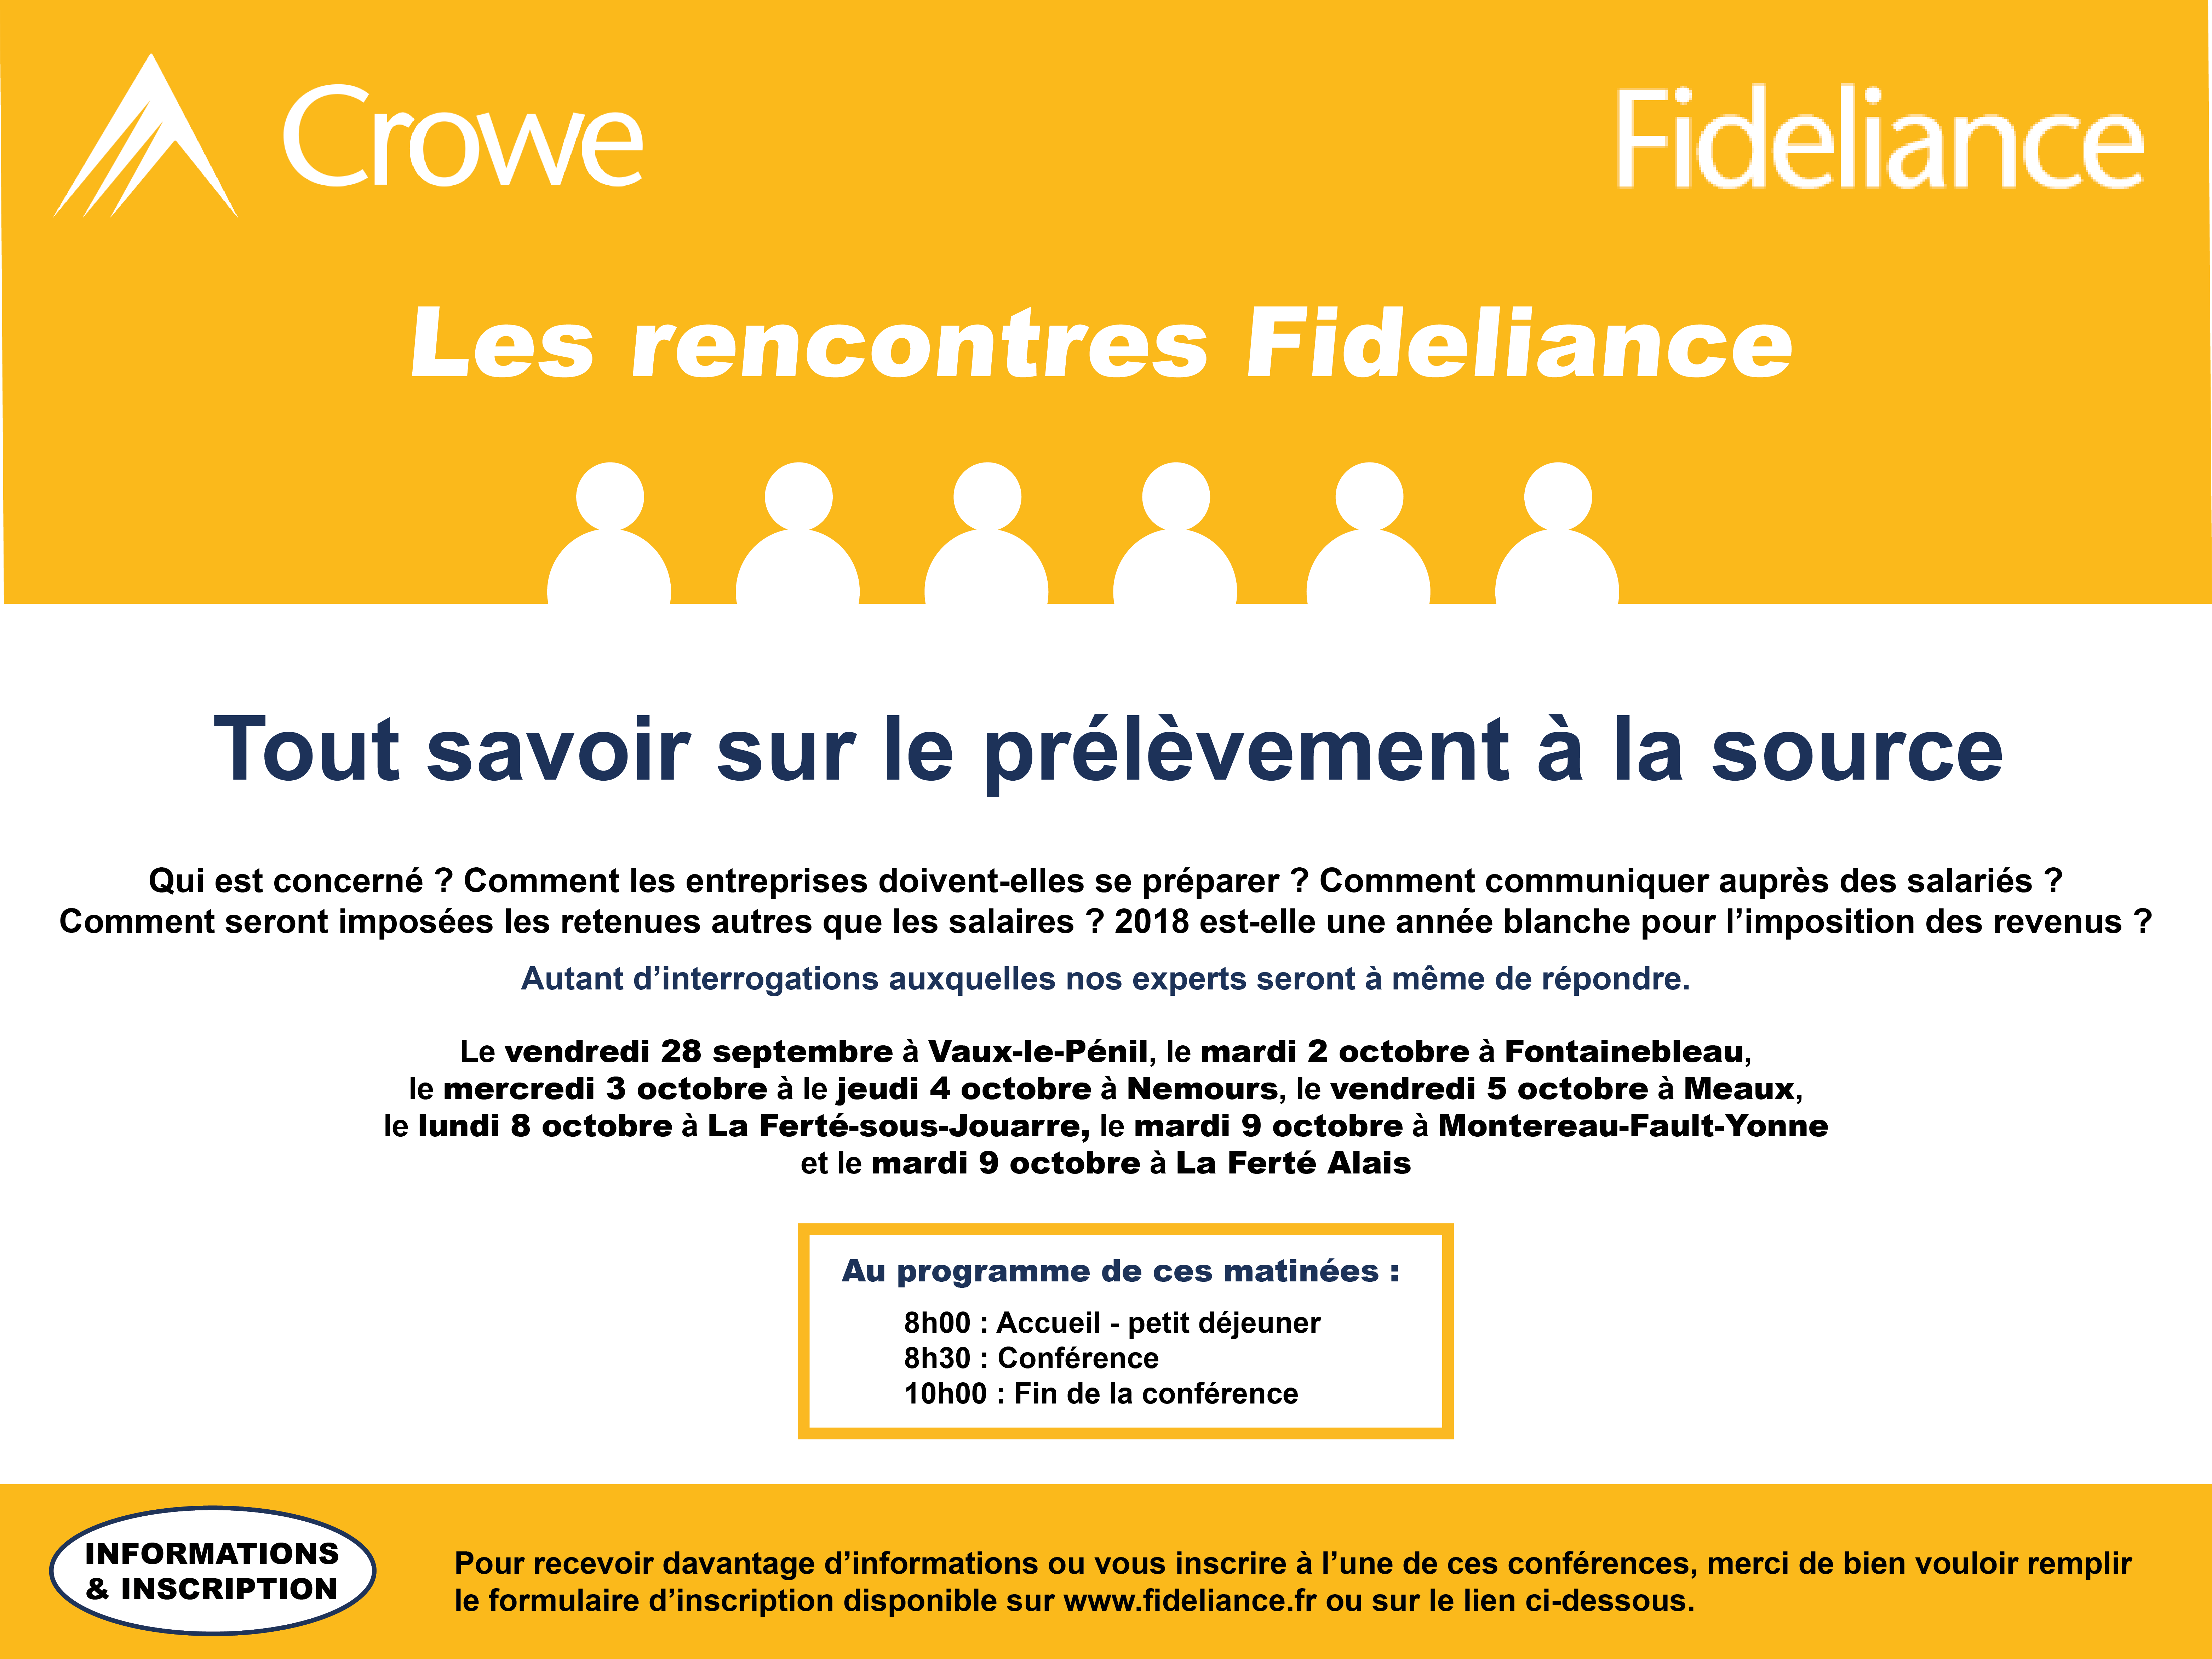 conference fideliance prelevement a la source